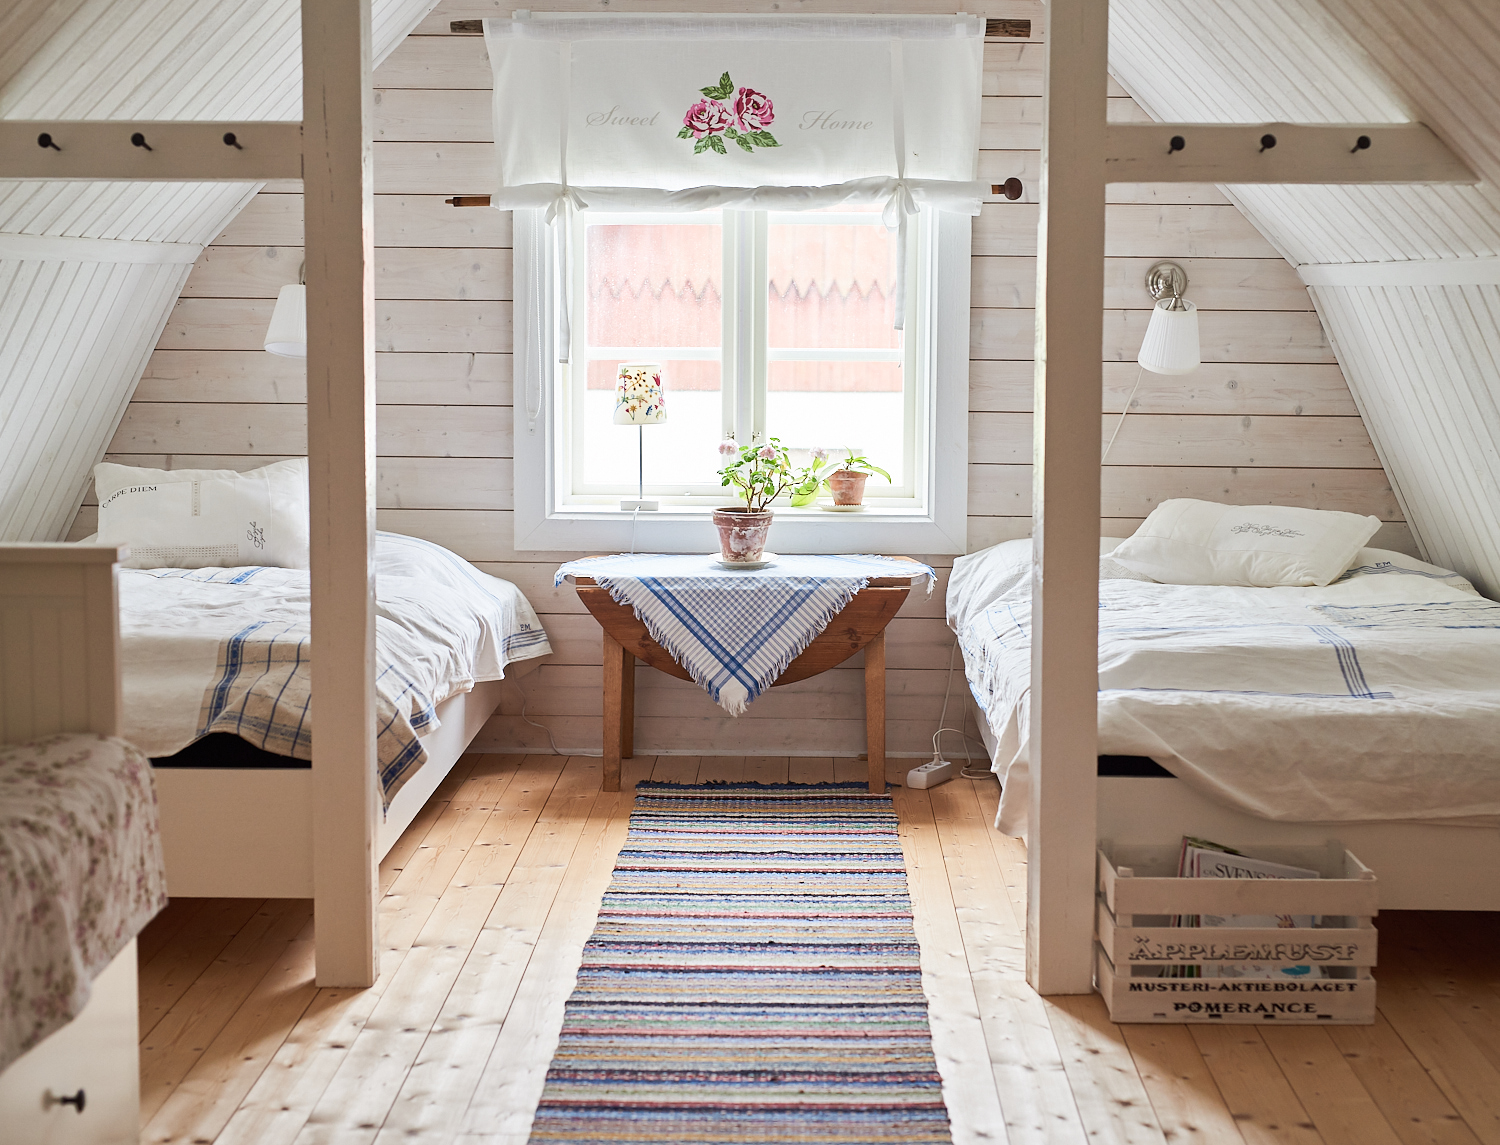 swedish rug bedroom 0.jpg